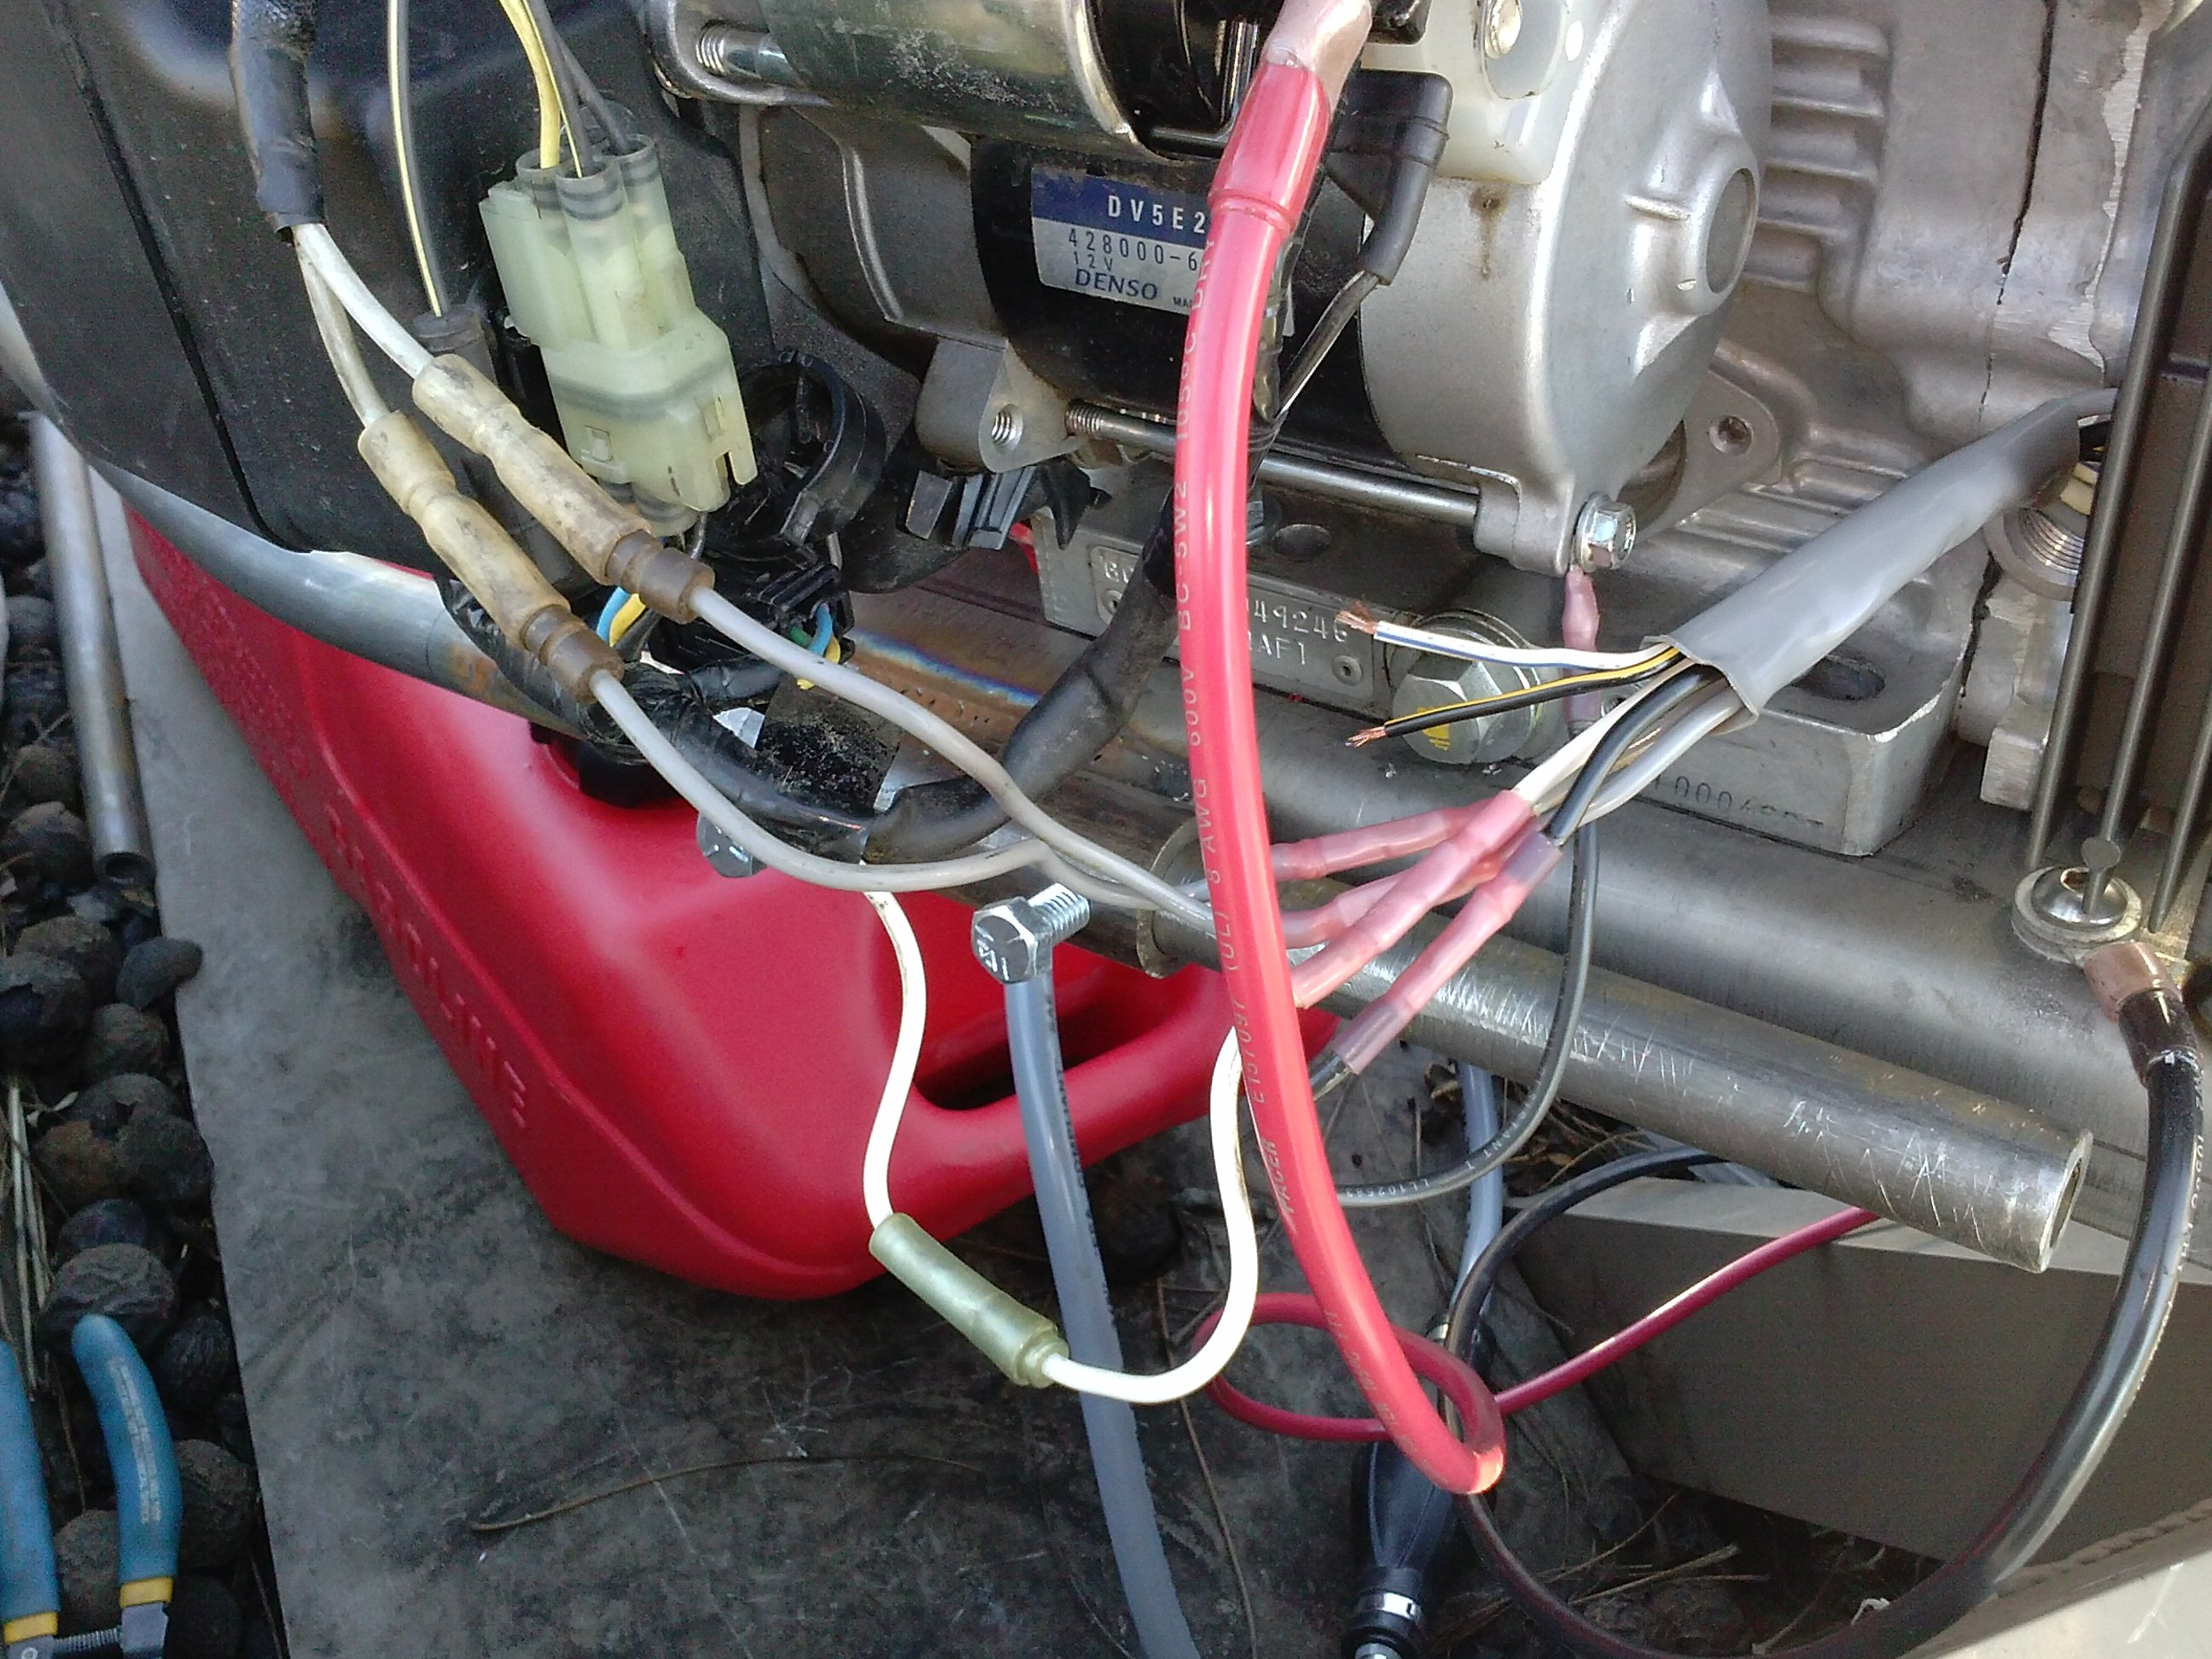 2013 12 01_204034_cam006151 i need help troubleshooting the charging system on a honda gx630 honda gx390 wiring diagram at mifinder.co